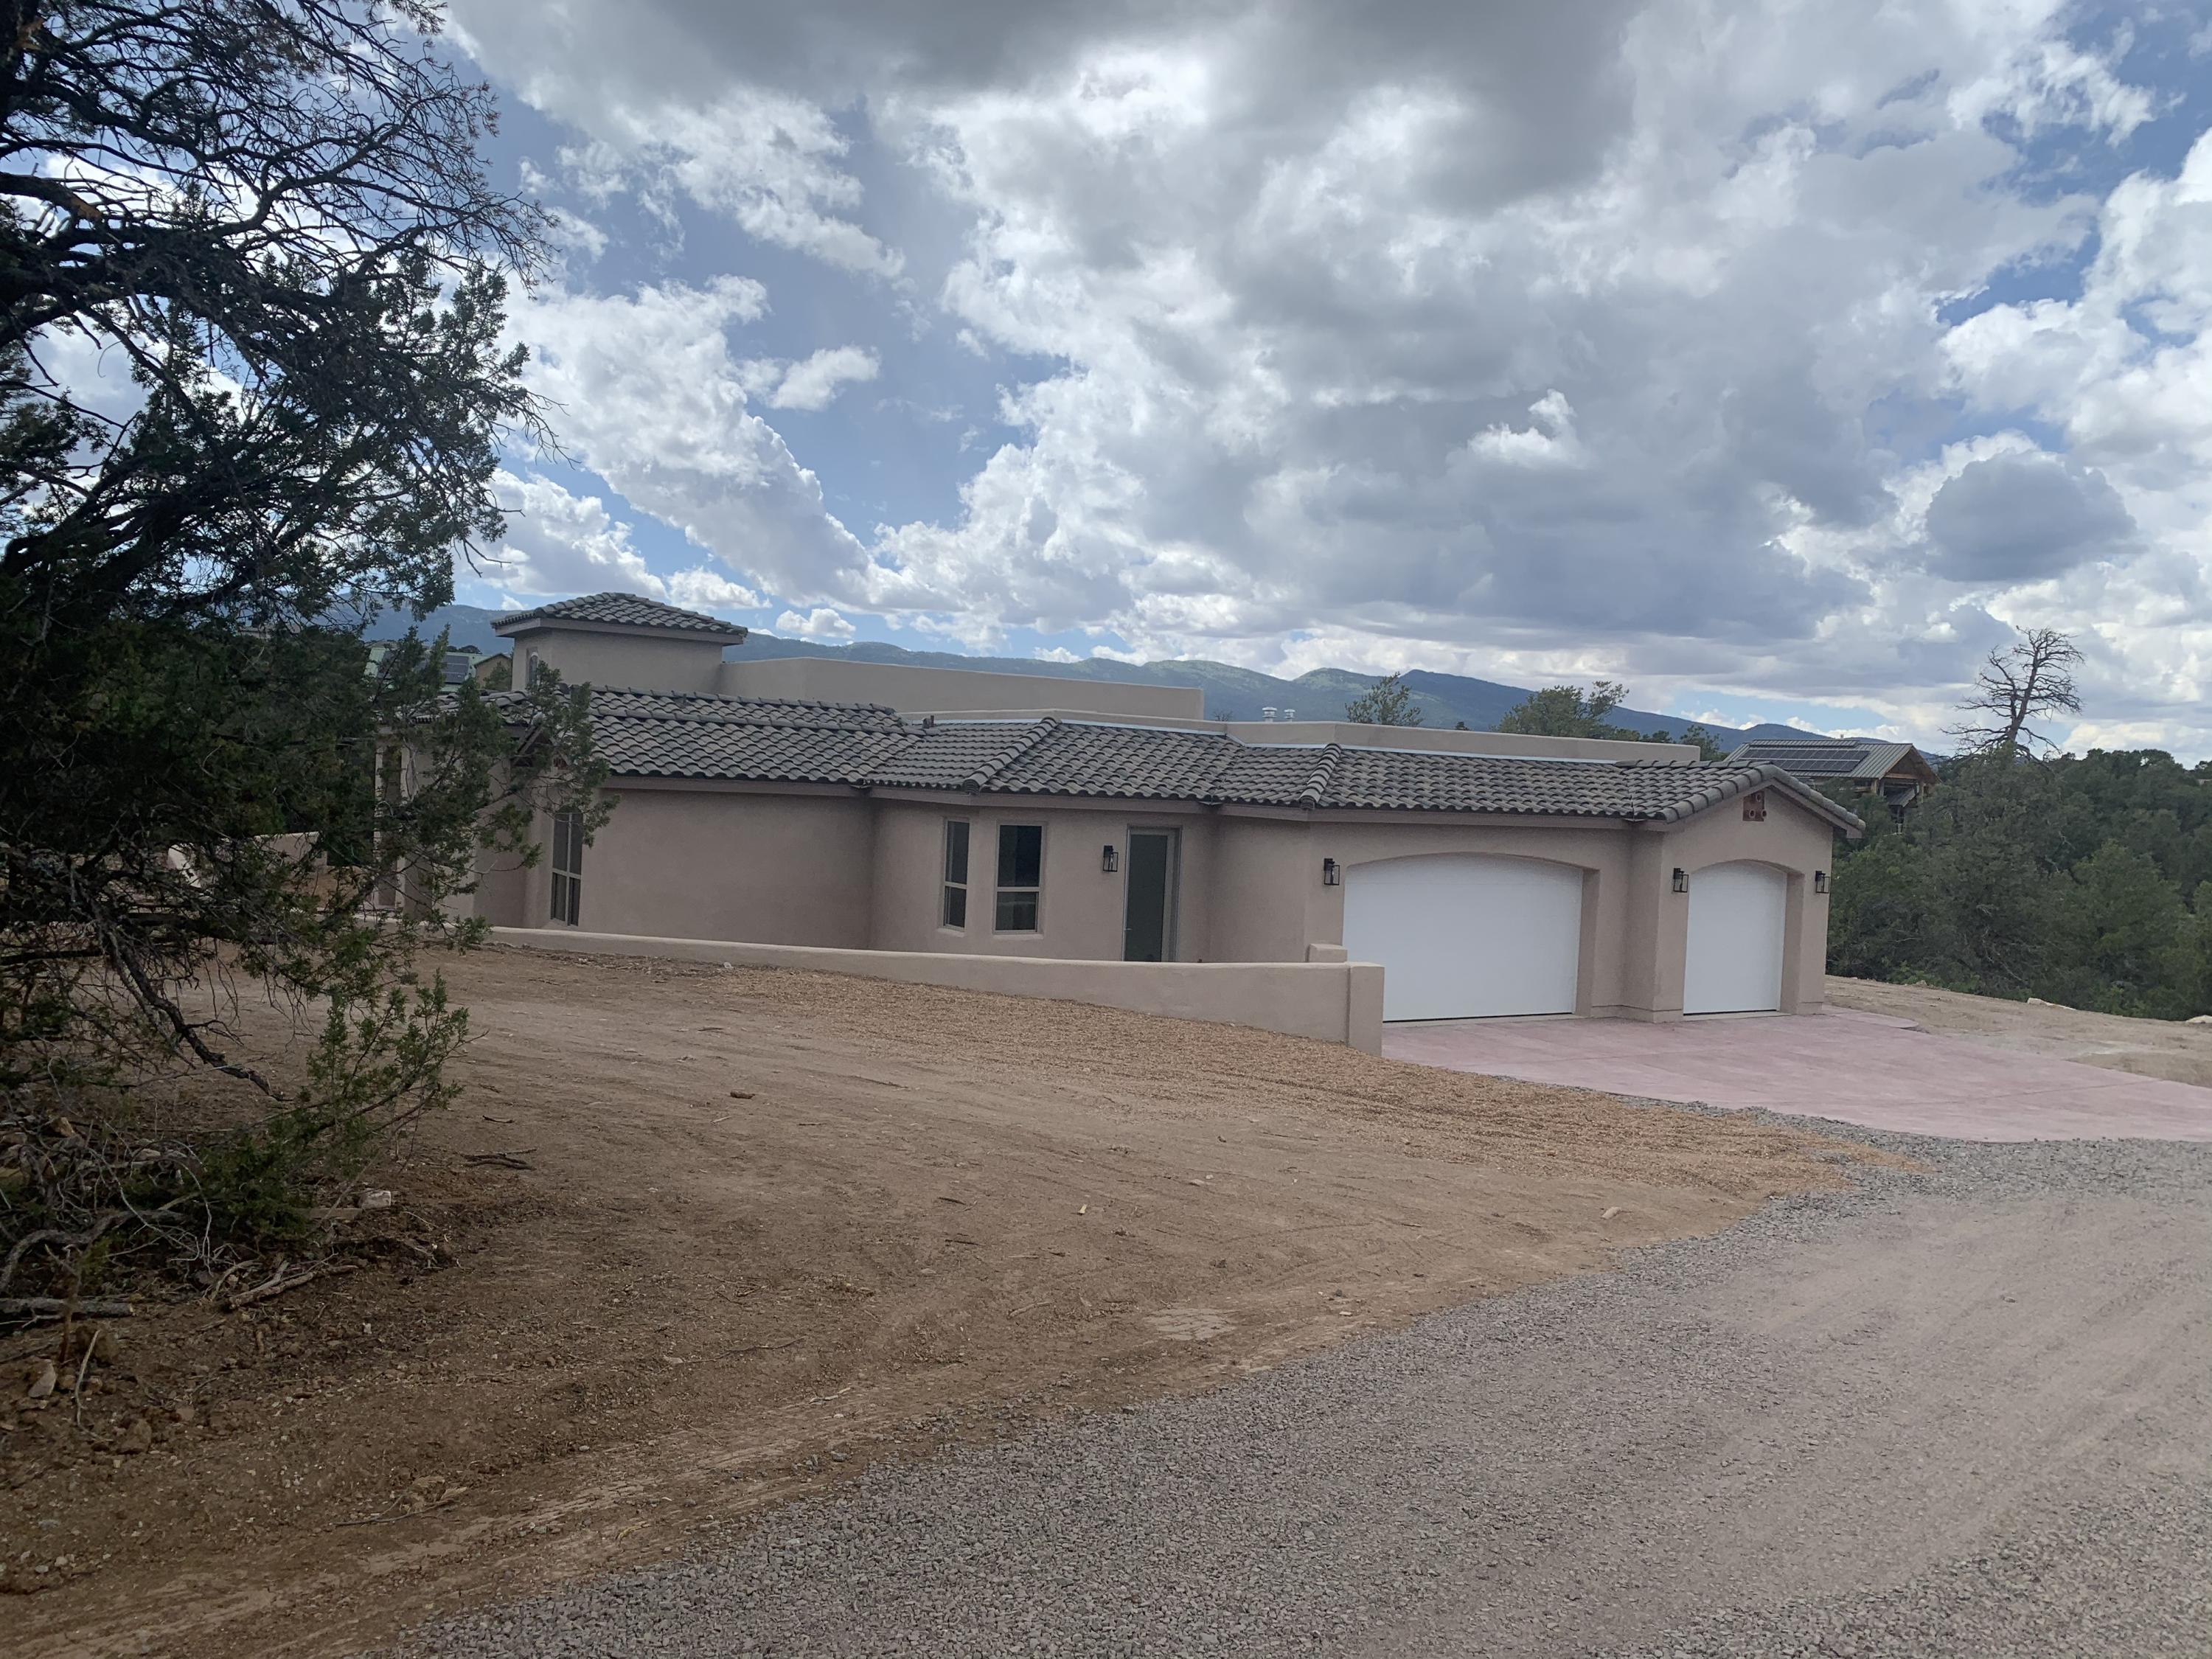 19 Coyote Canyon Trail, Tijeras, NM 87059 - Tijeras, NM real estate listing